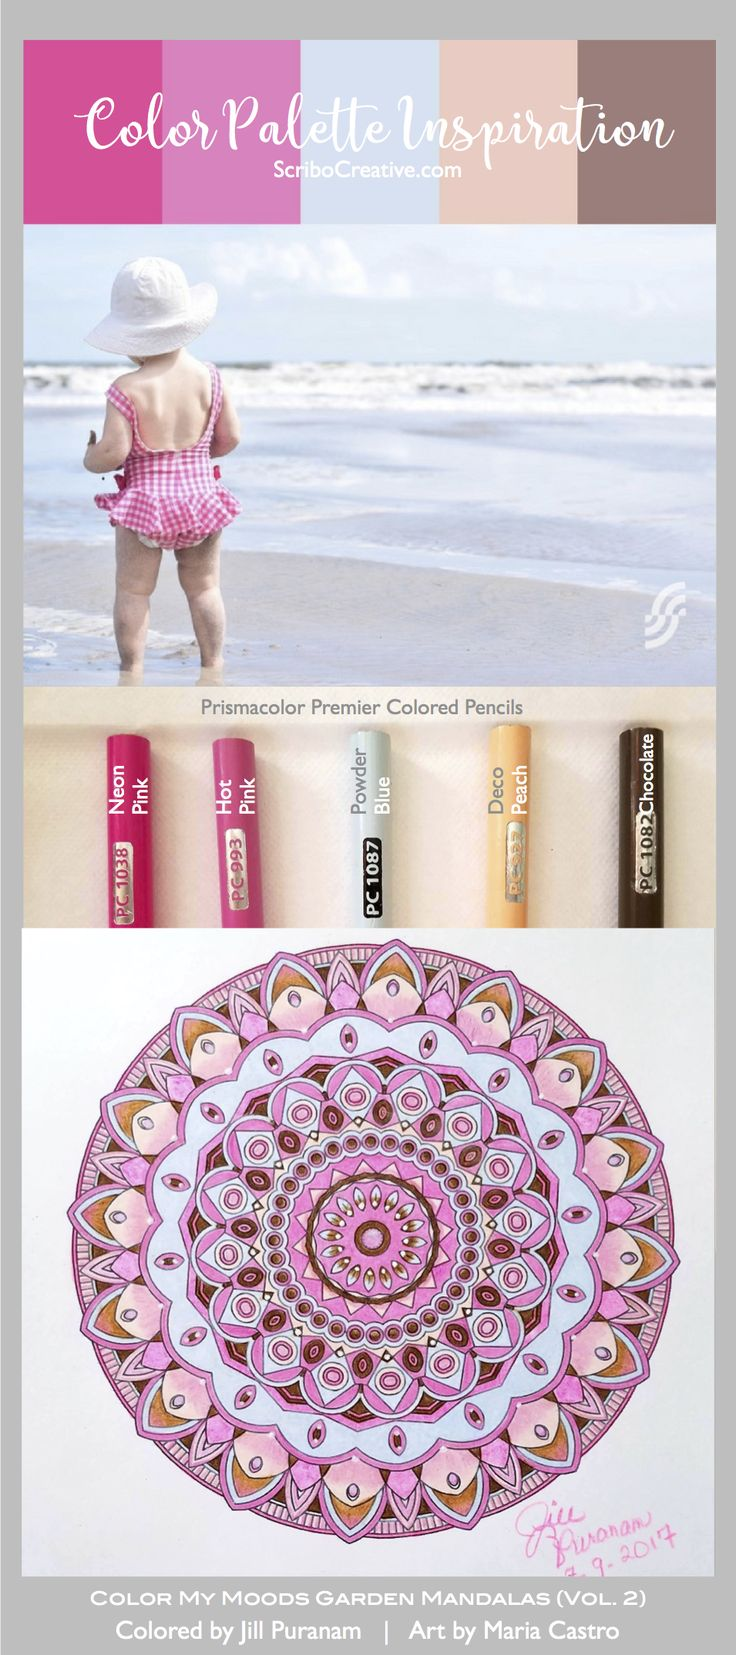 18 Best Color Palette Inspiration By ScriboCreative Images On Pinterest